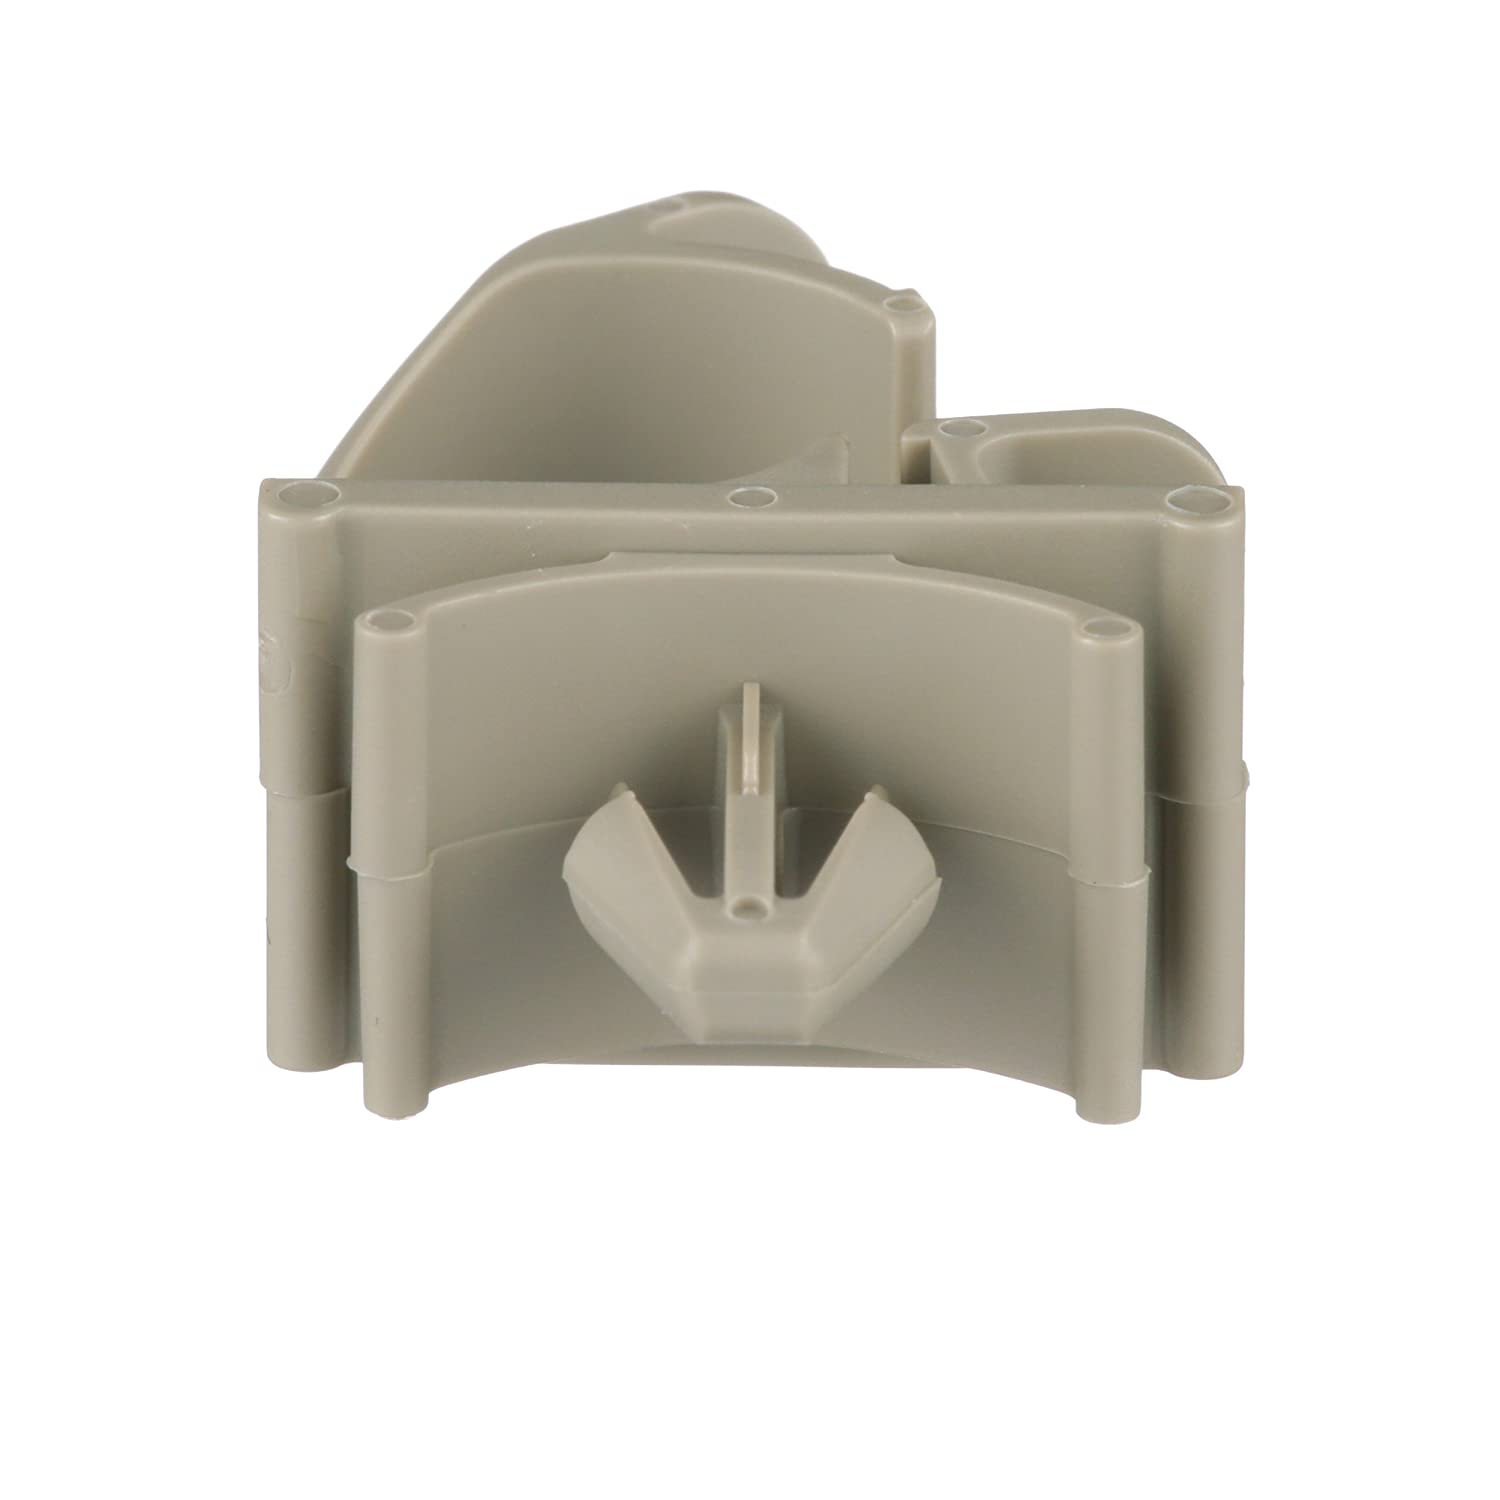 Panduit LWC25-H25-C Latching Wire Clip, Push Barb, Nylon 6.6, 0.25-Inch Bundle, Natural (100-Pack)